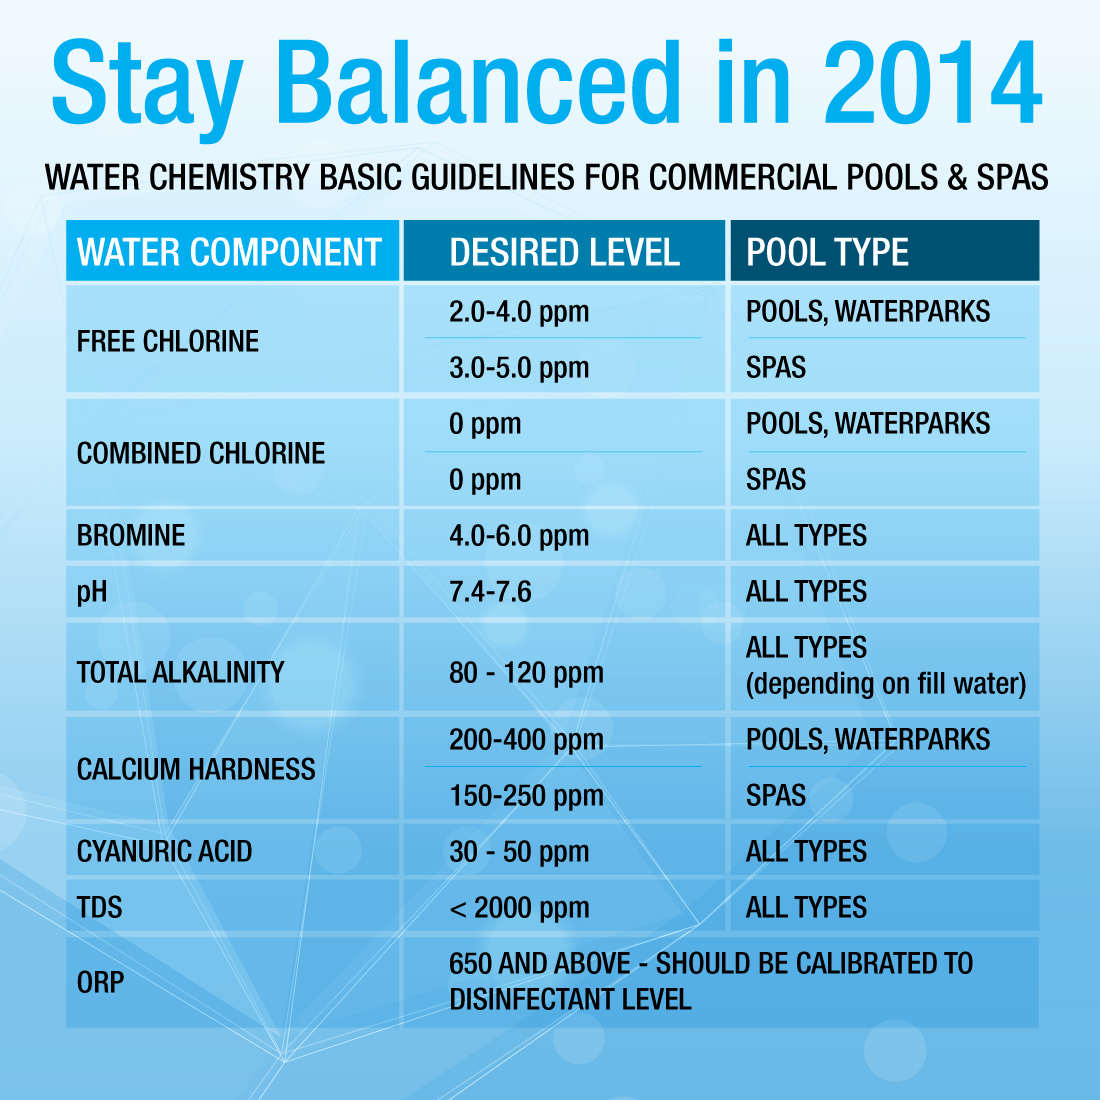 Water Chemistry Basic Guidelines for Commercial Pools and Spas